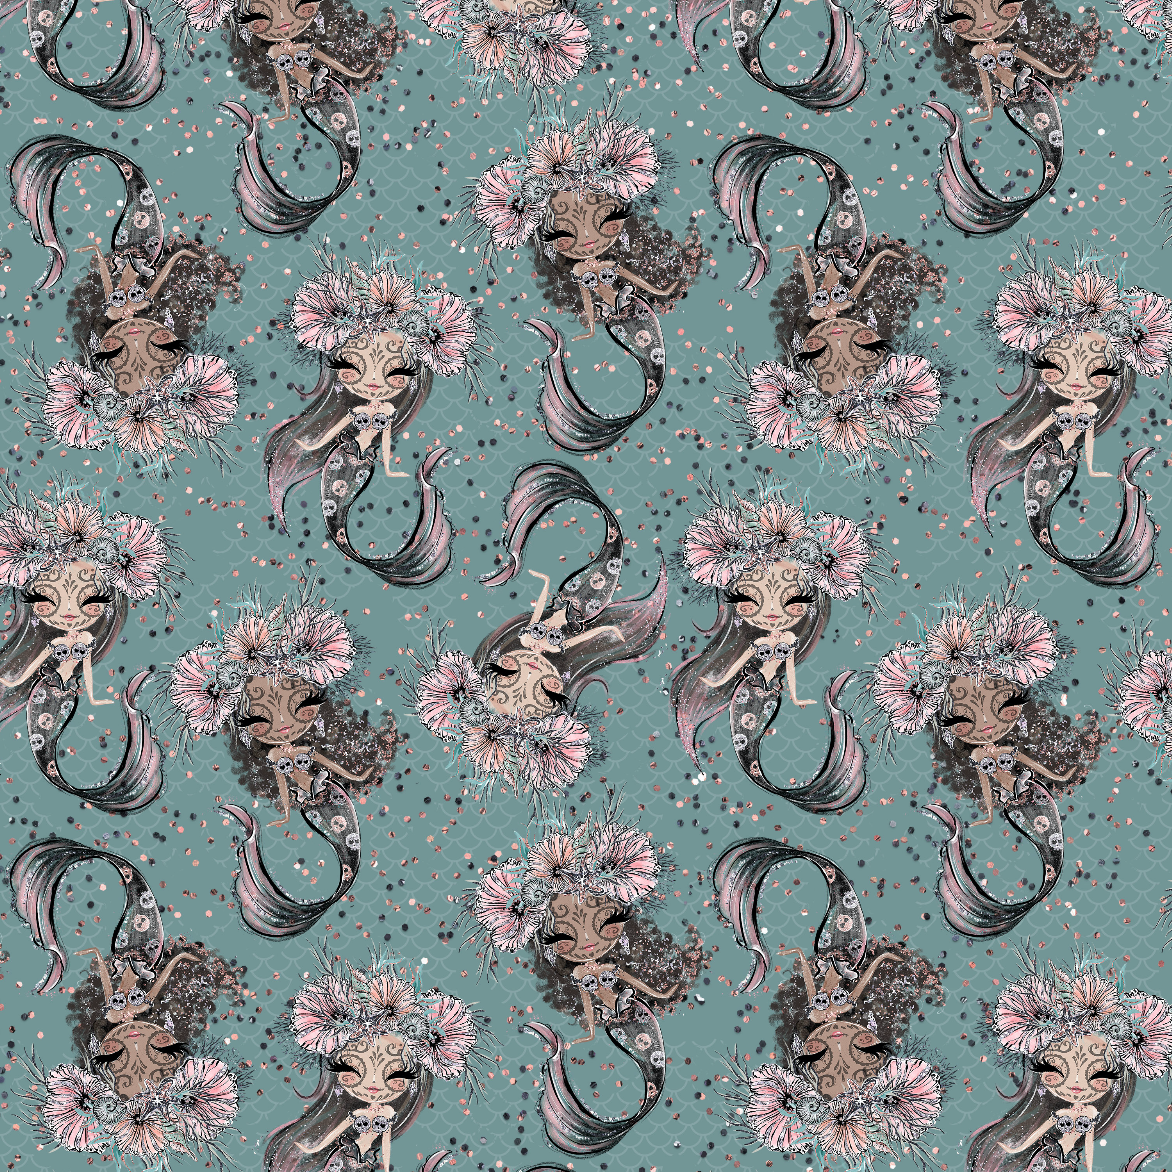 PRE ORDER - Halloween Mermaids Green - Digital Fabric Print